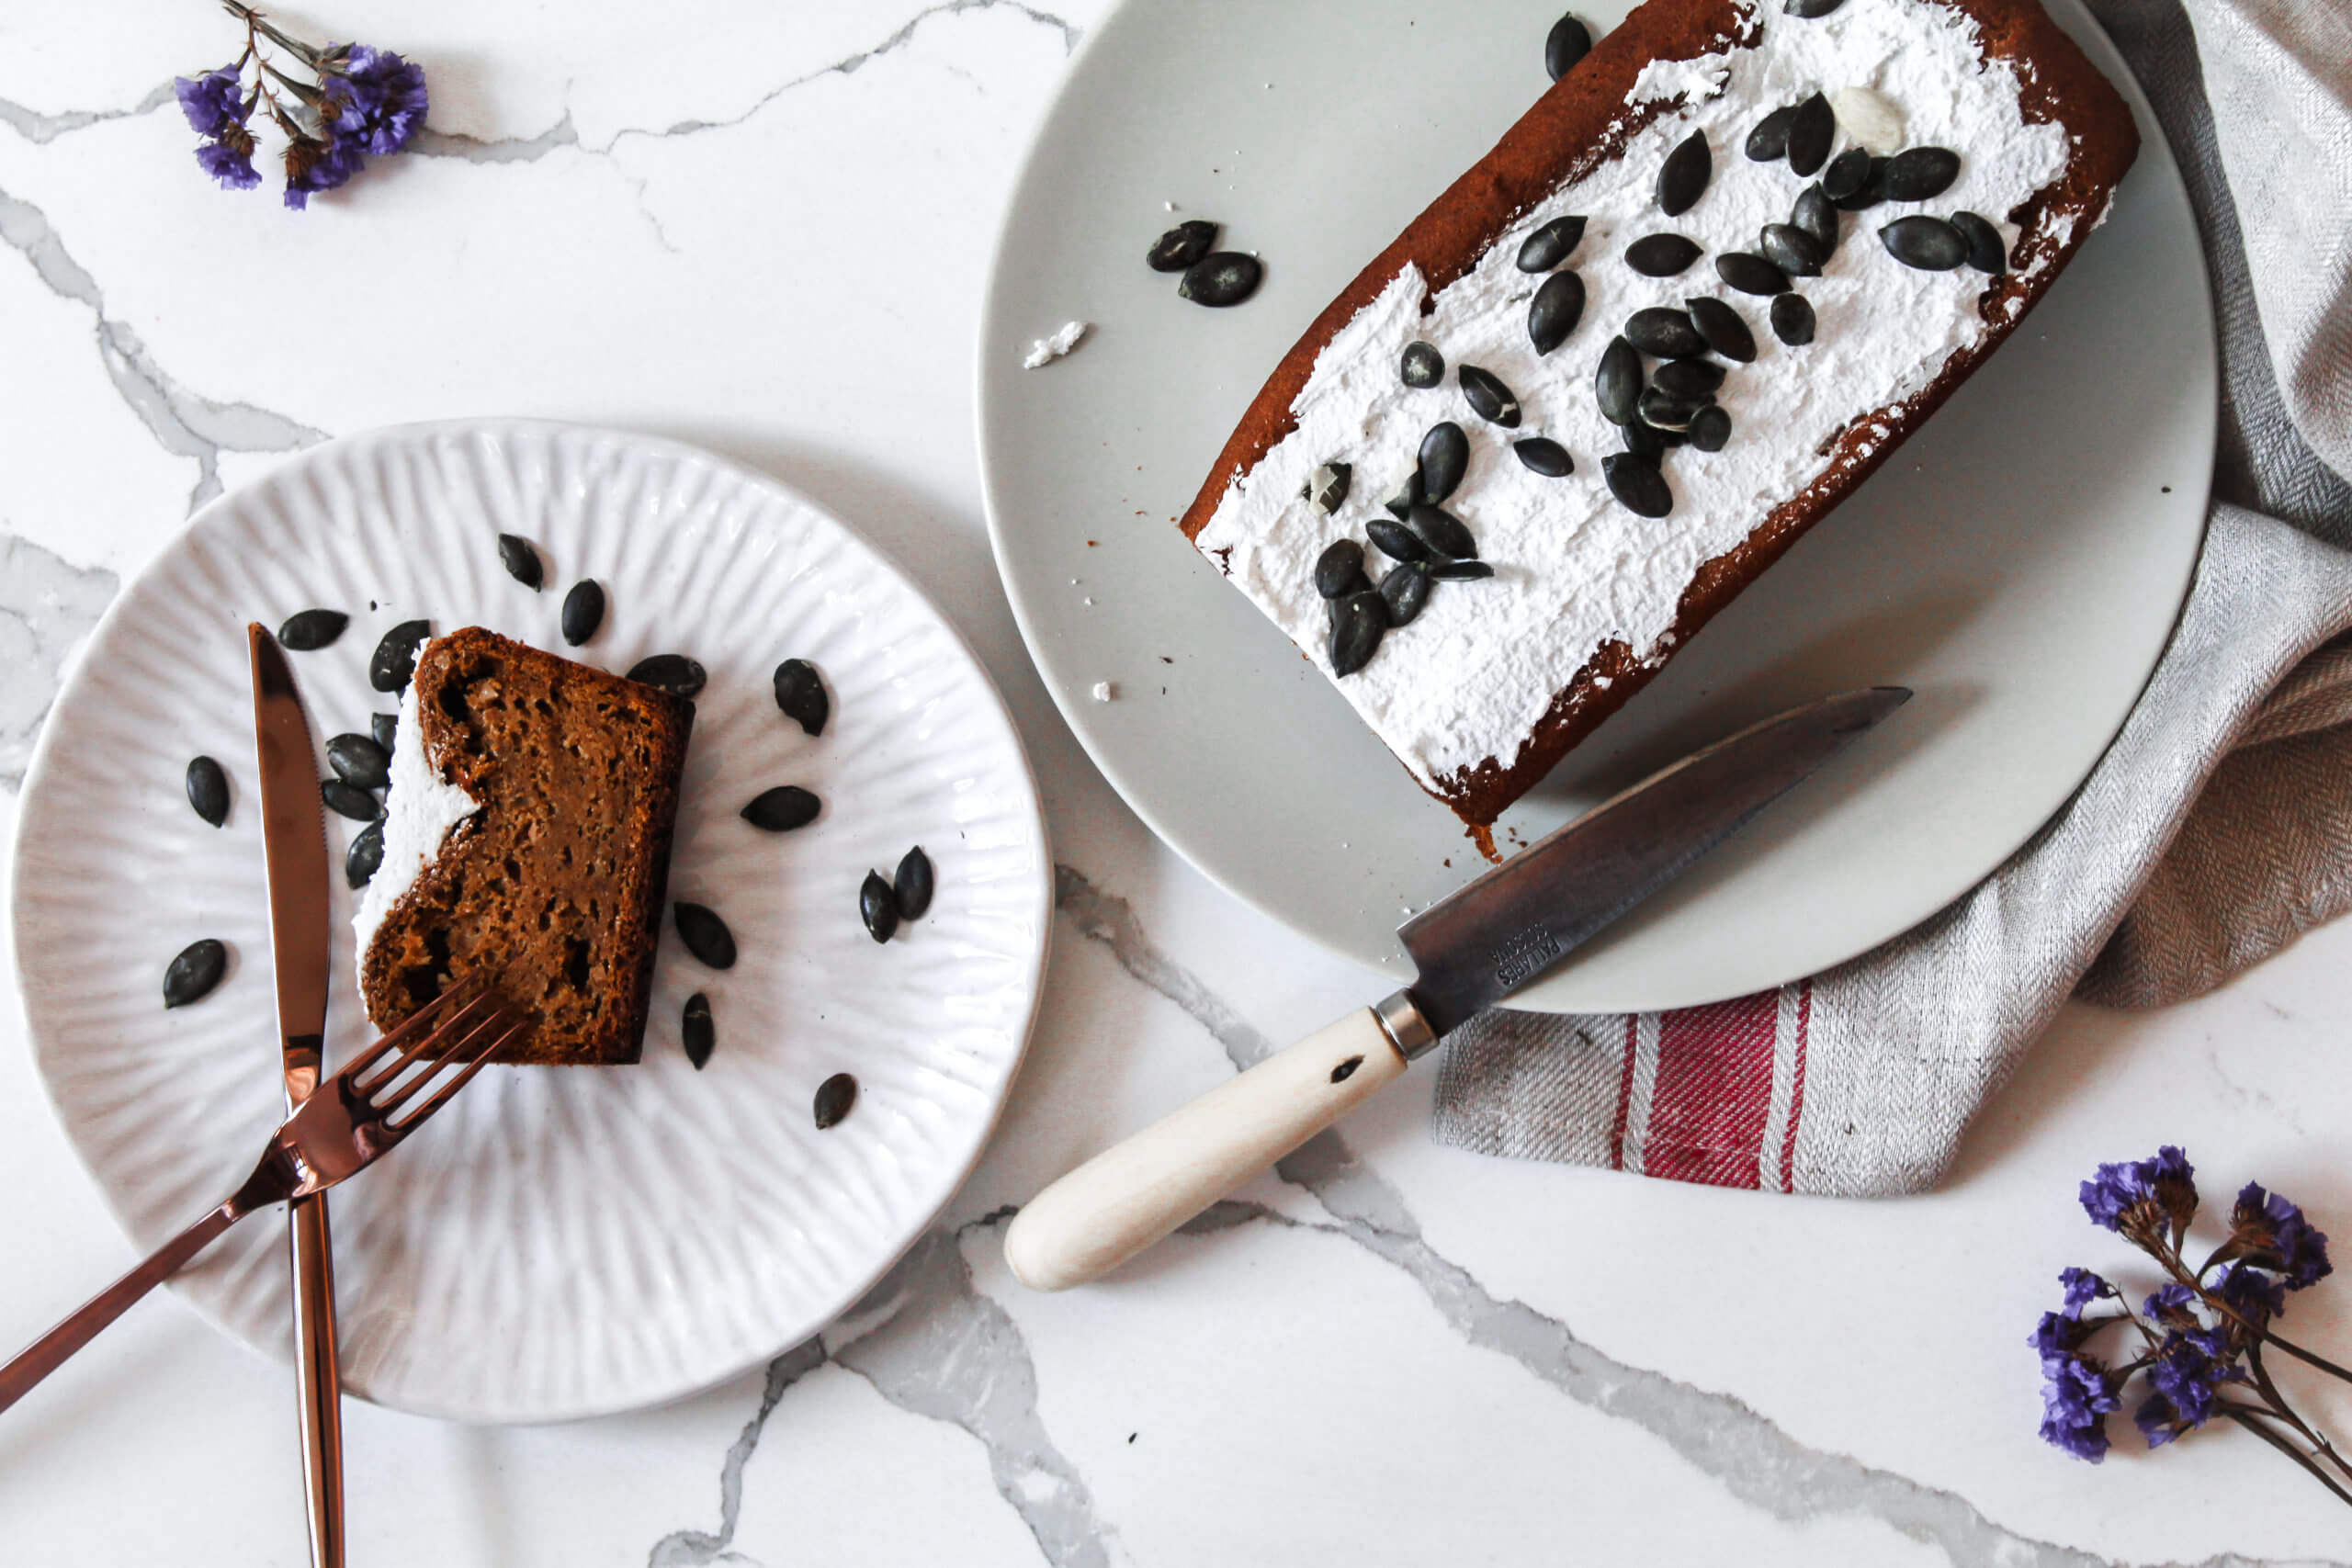 sustainable and healthy-lifestyle influcencer ahres her recipe for the perfect banana bread